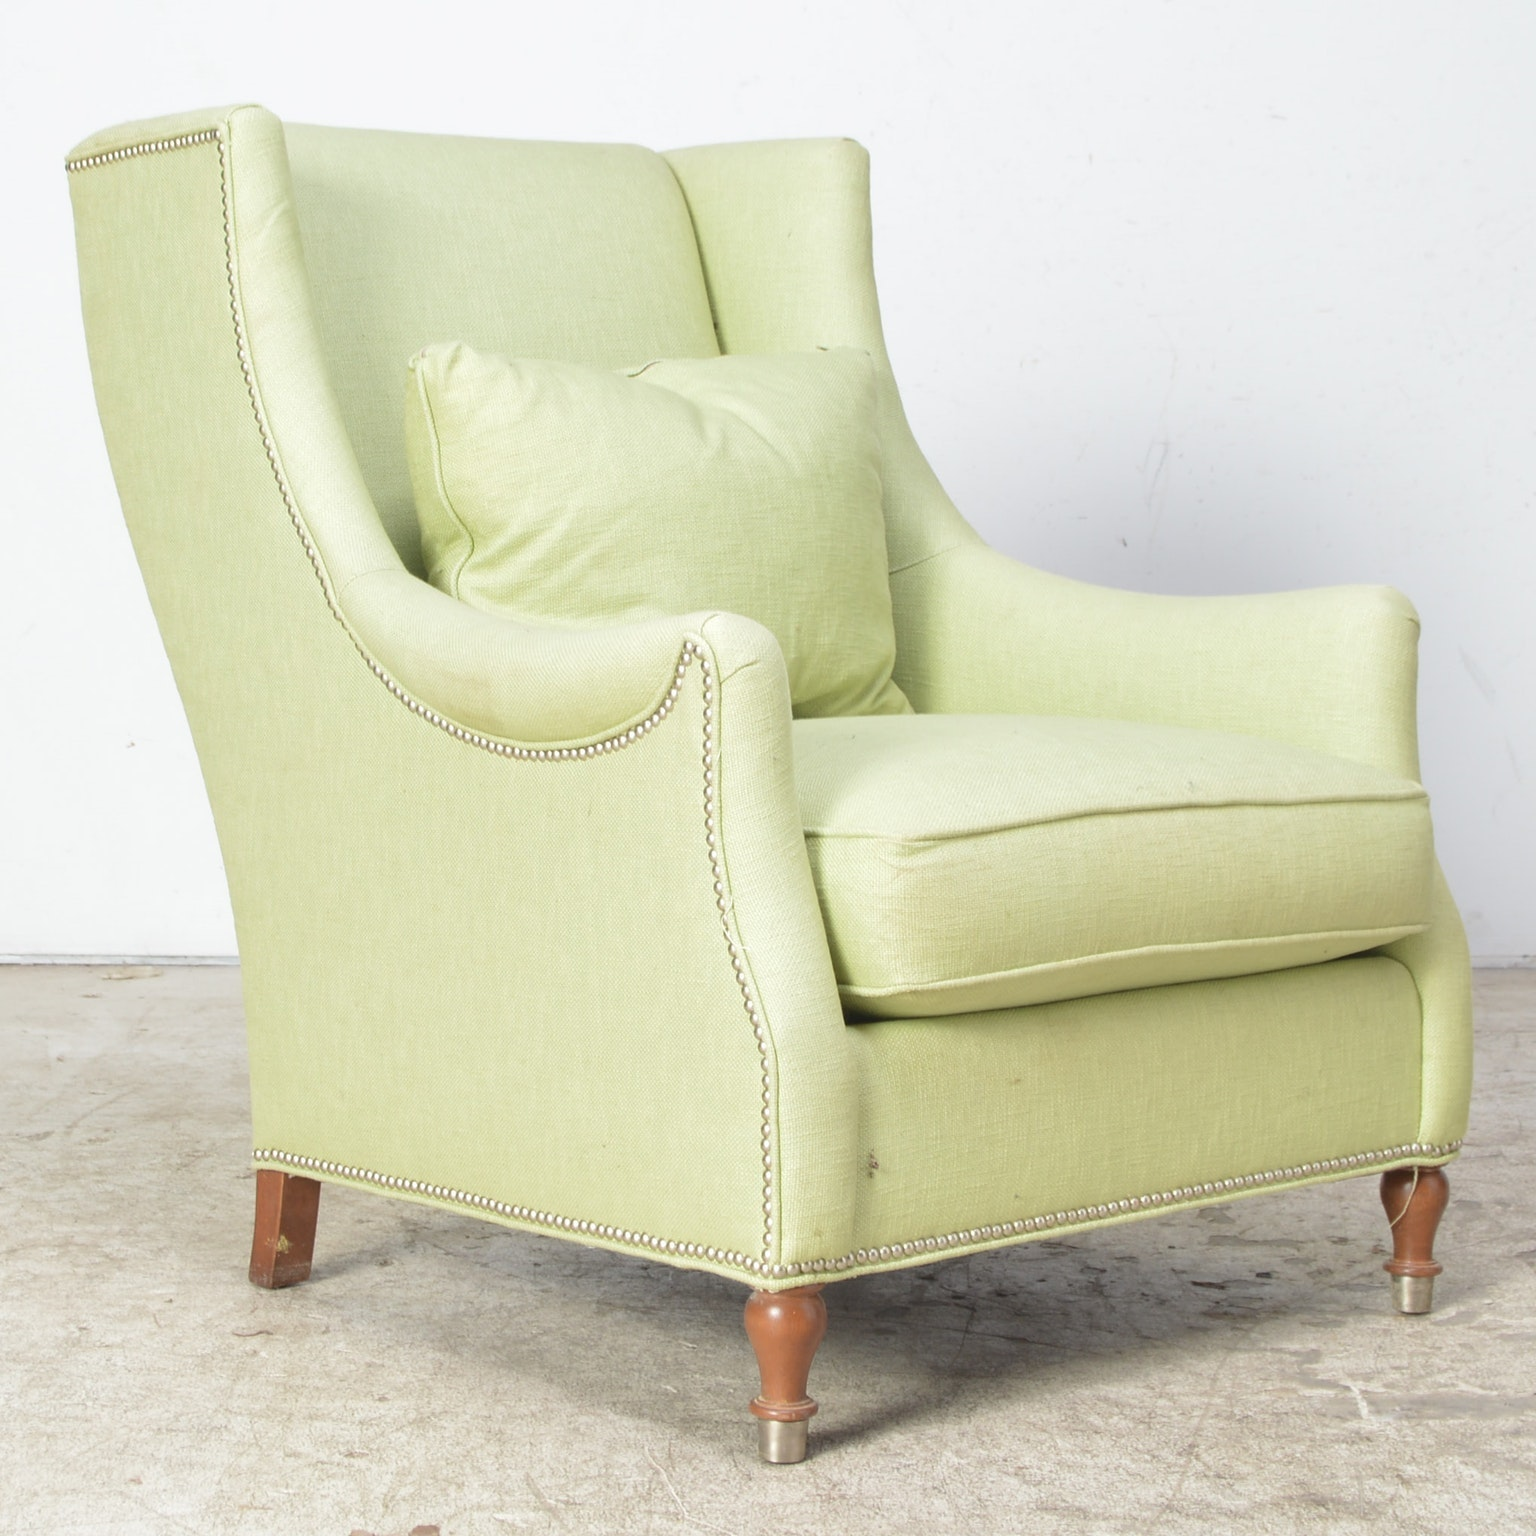 C.R. Laine Upholstered Armchair